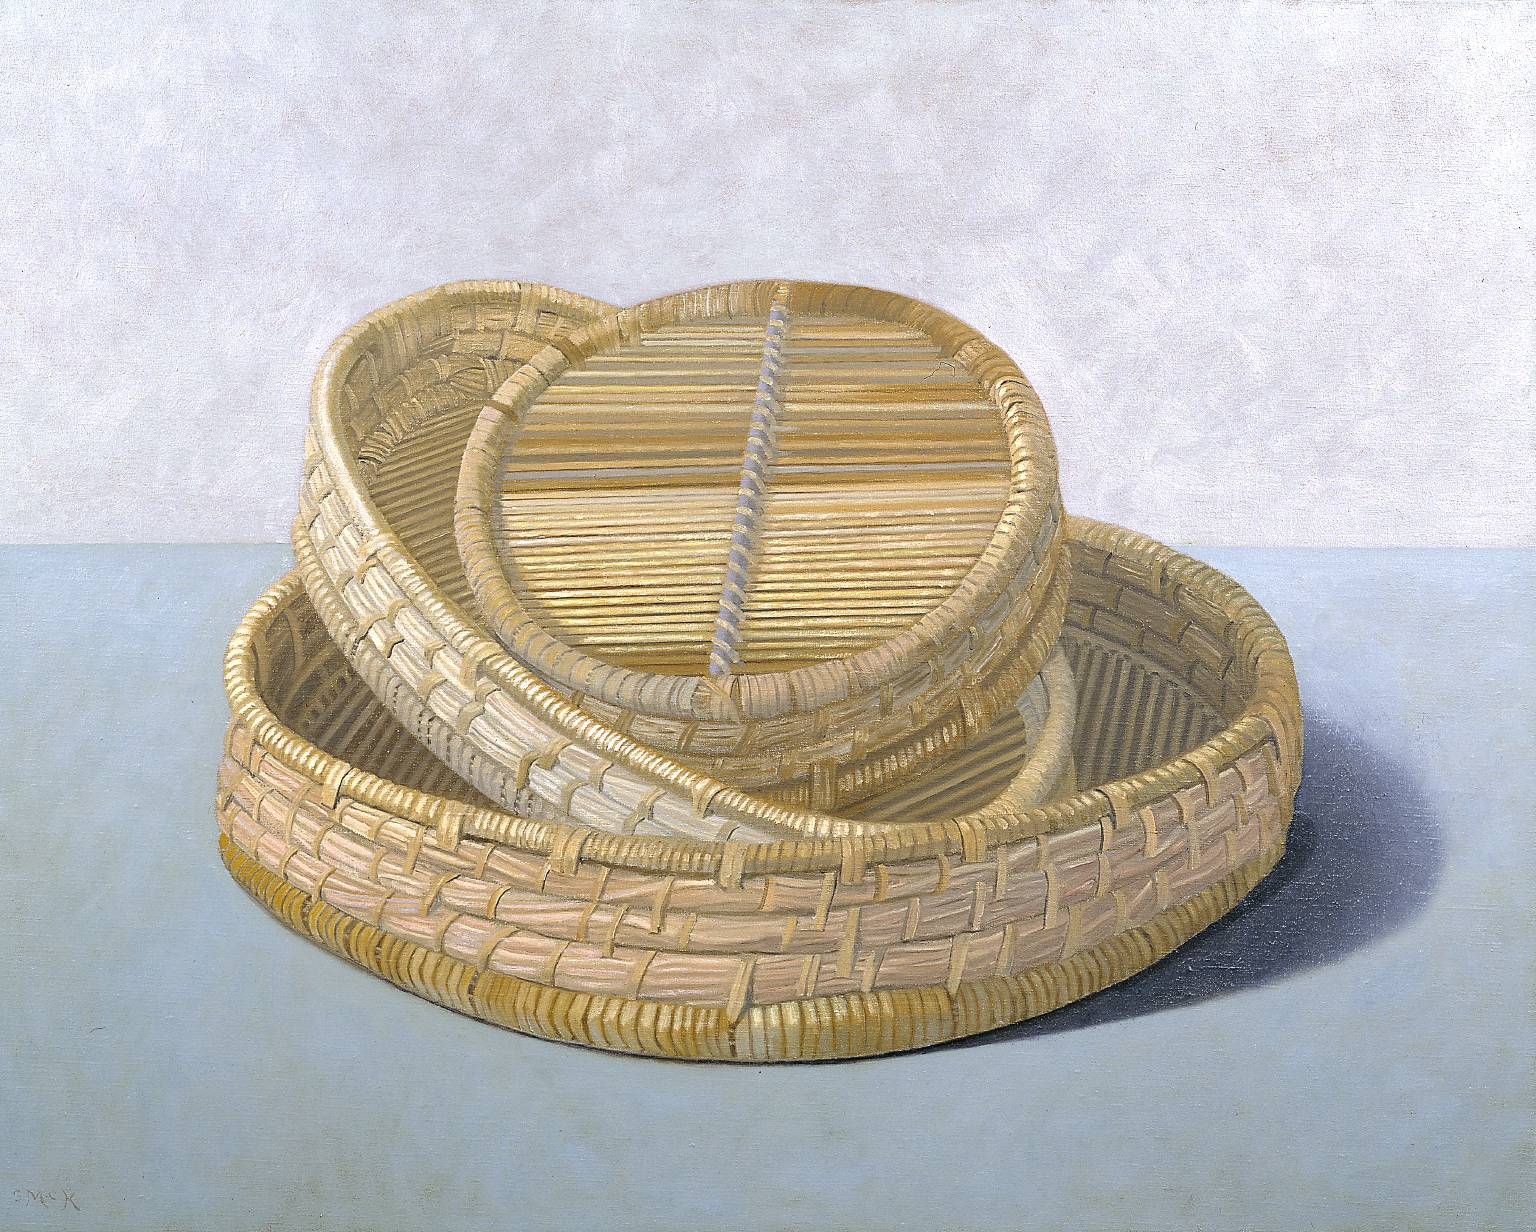 Three Baskets 1995 by Stephen McKenna born 1939